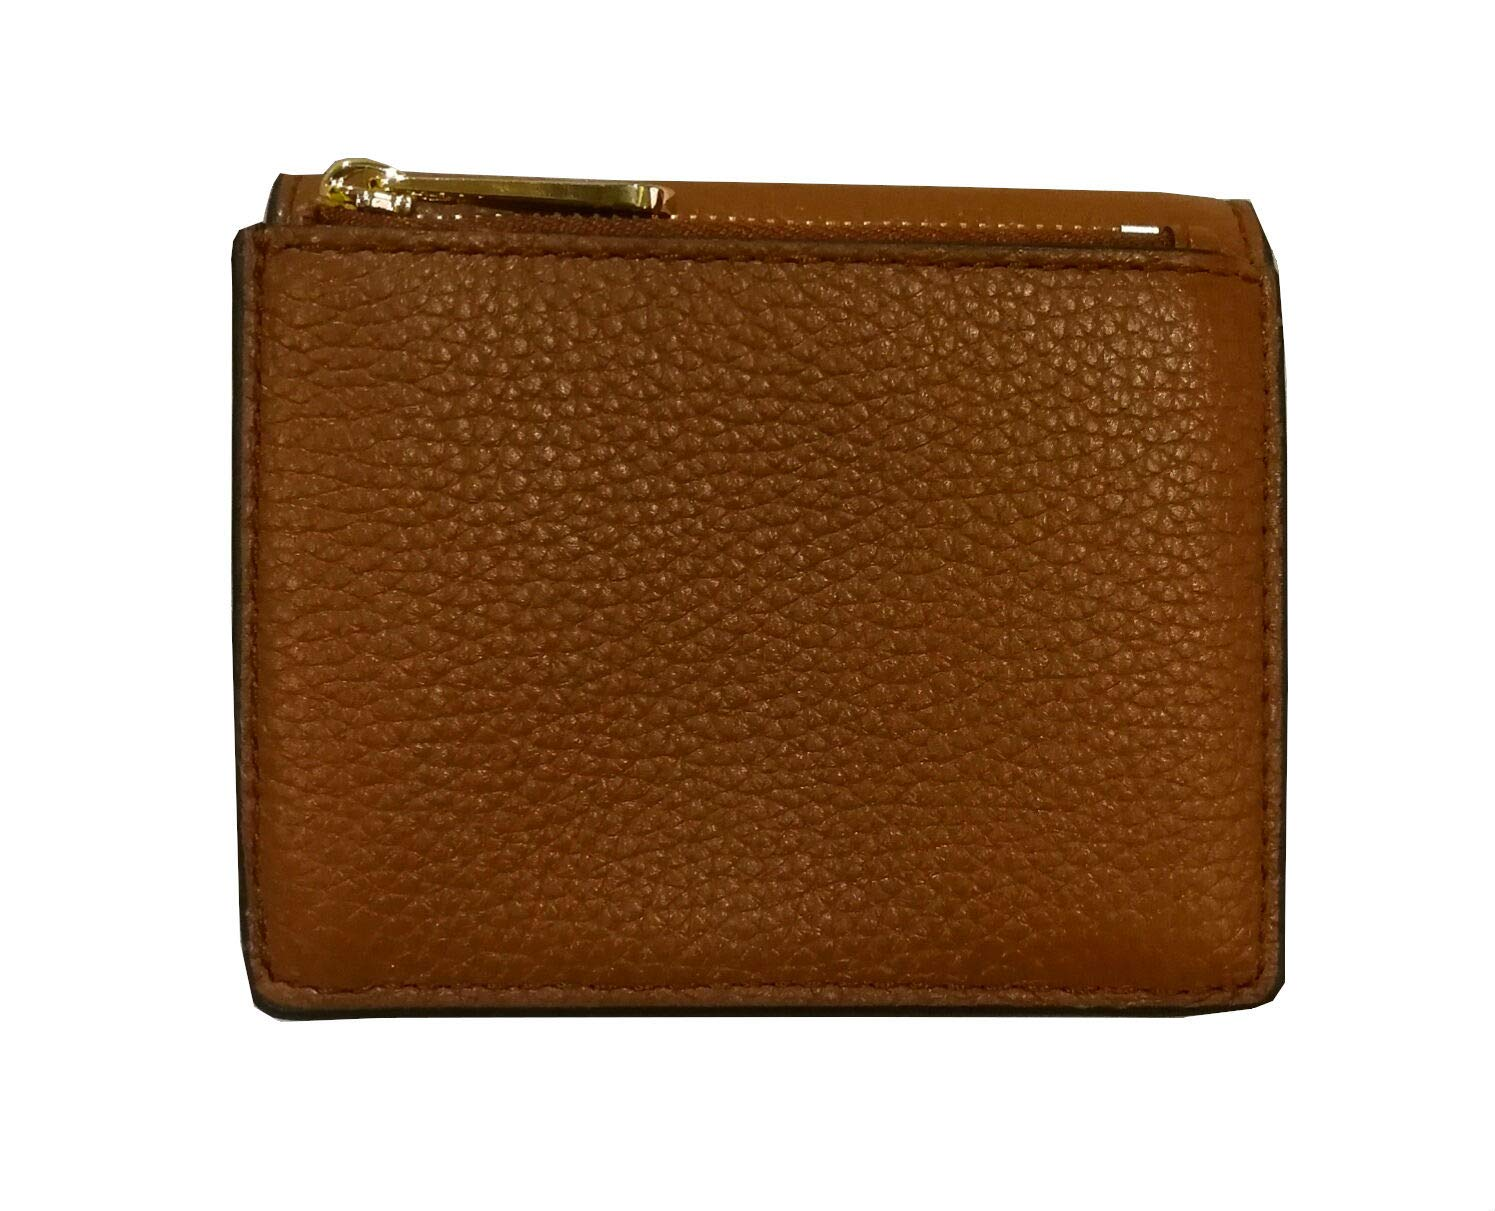 Michael Kors Fulton Leather Carryall Card Case Wallet (Luggage) by Michael Kors (Image #2)